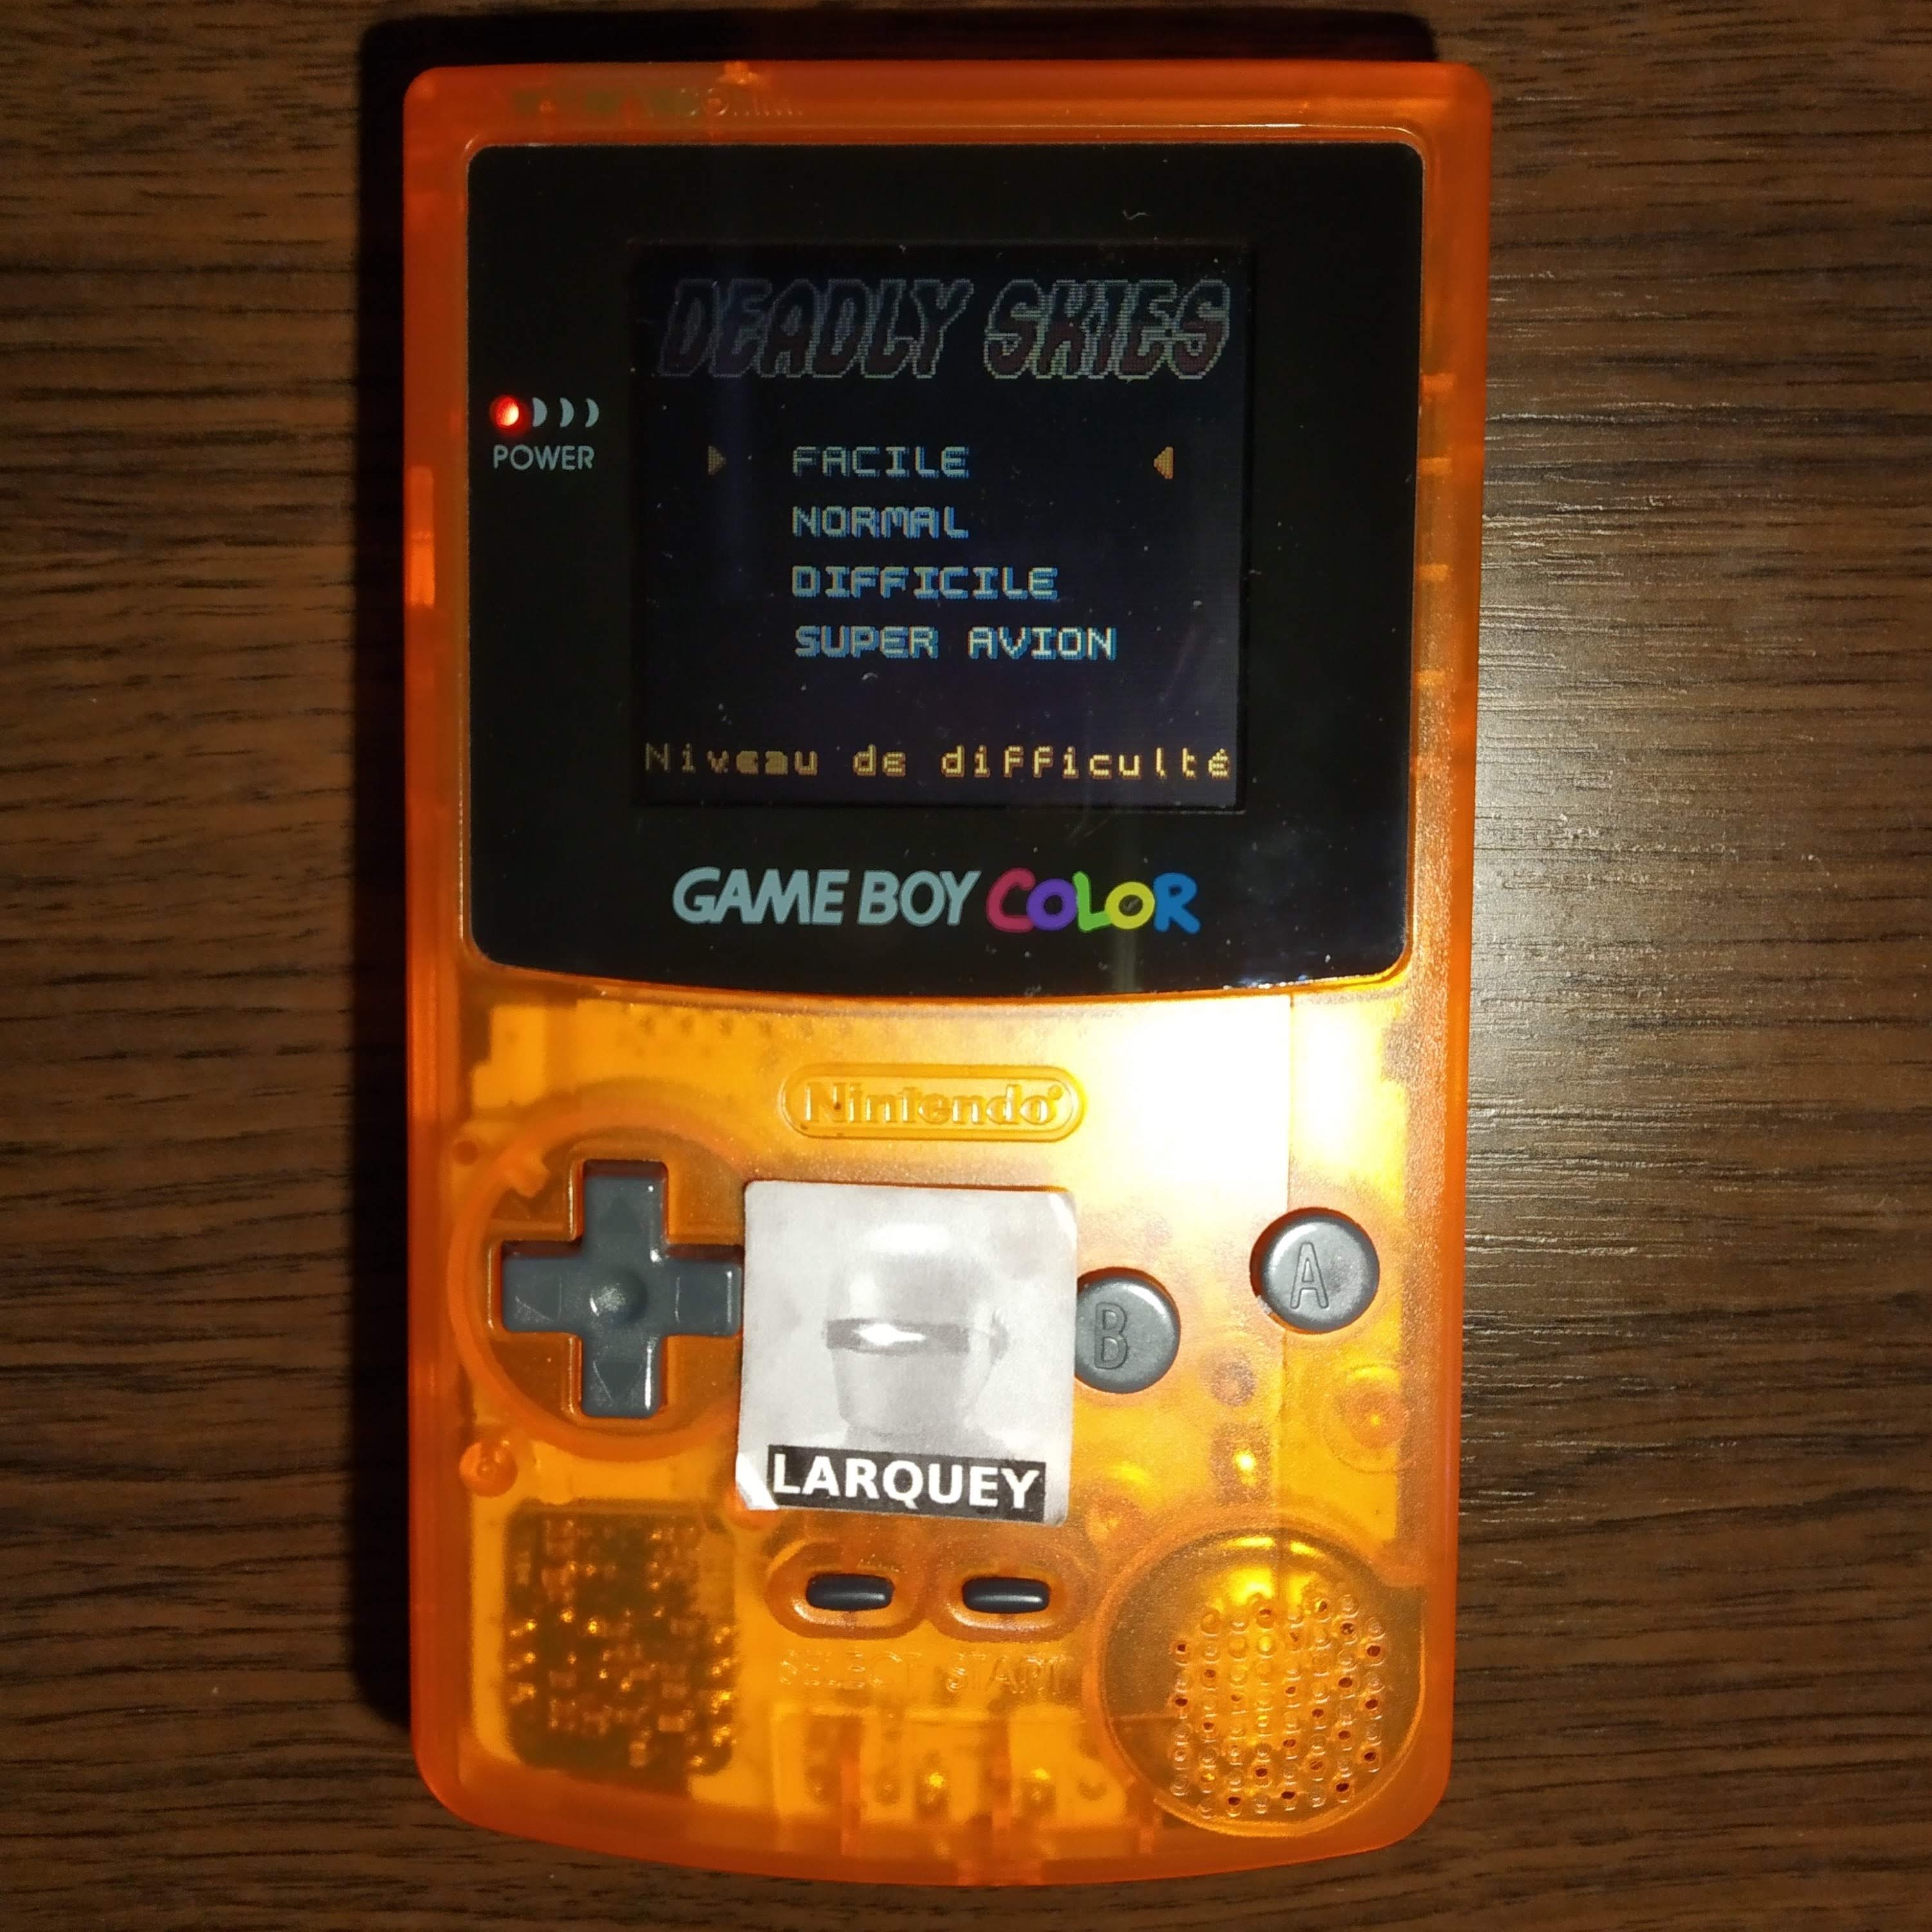 Larquey: AirForce Delta [Easy] (Game Boy Color) 20,400 points on 2020-07-23 11:24:20